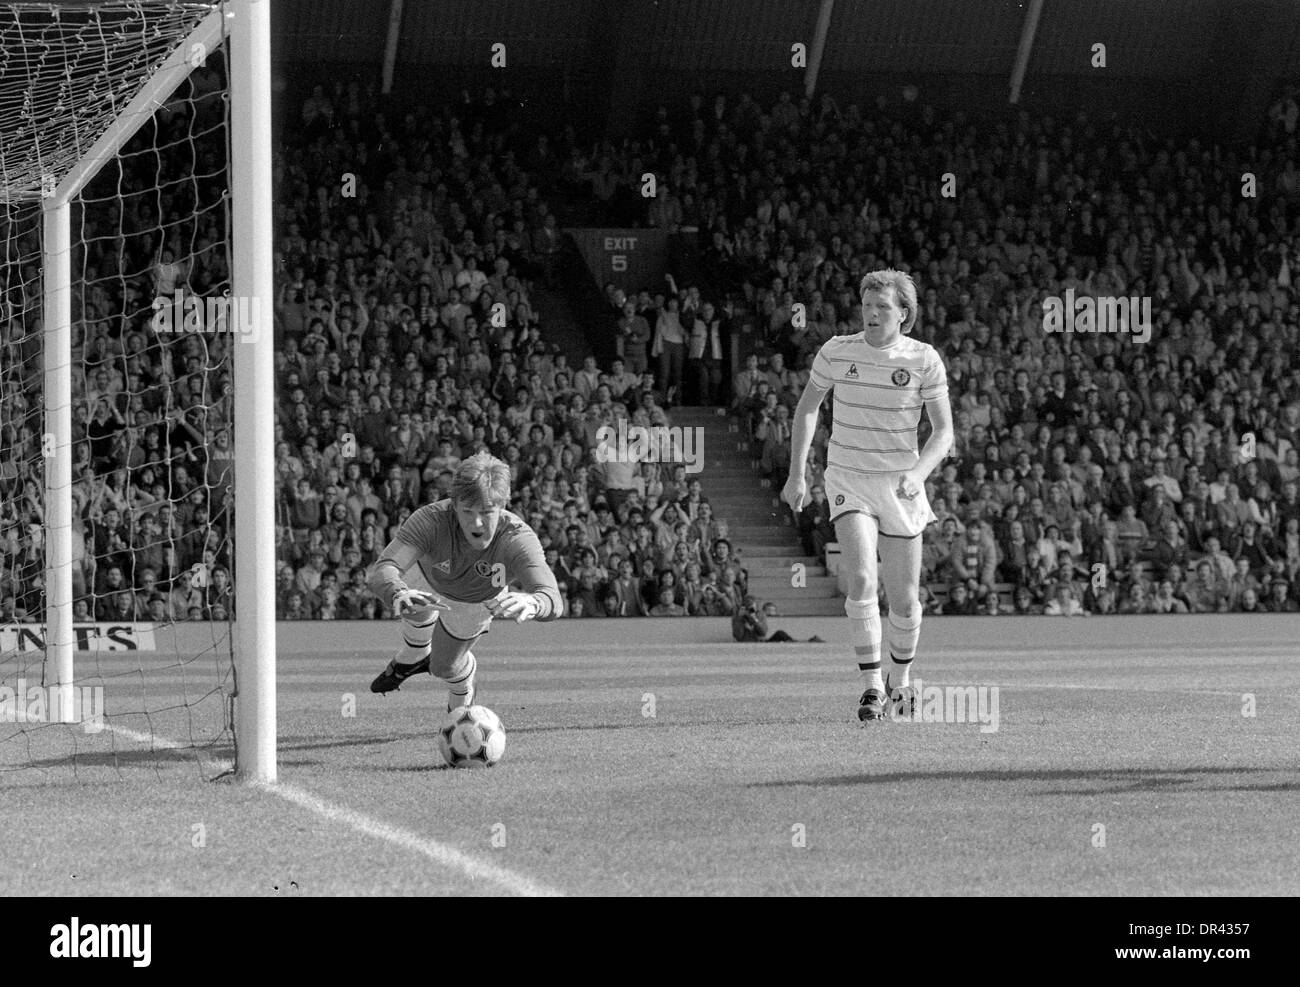 LIVERPOOL V ASTON VILLA 17/9/1983 Goalkeeper Nigel Spink saves watched by Brendan Ormsby - Stock Image